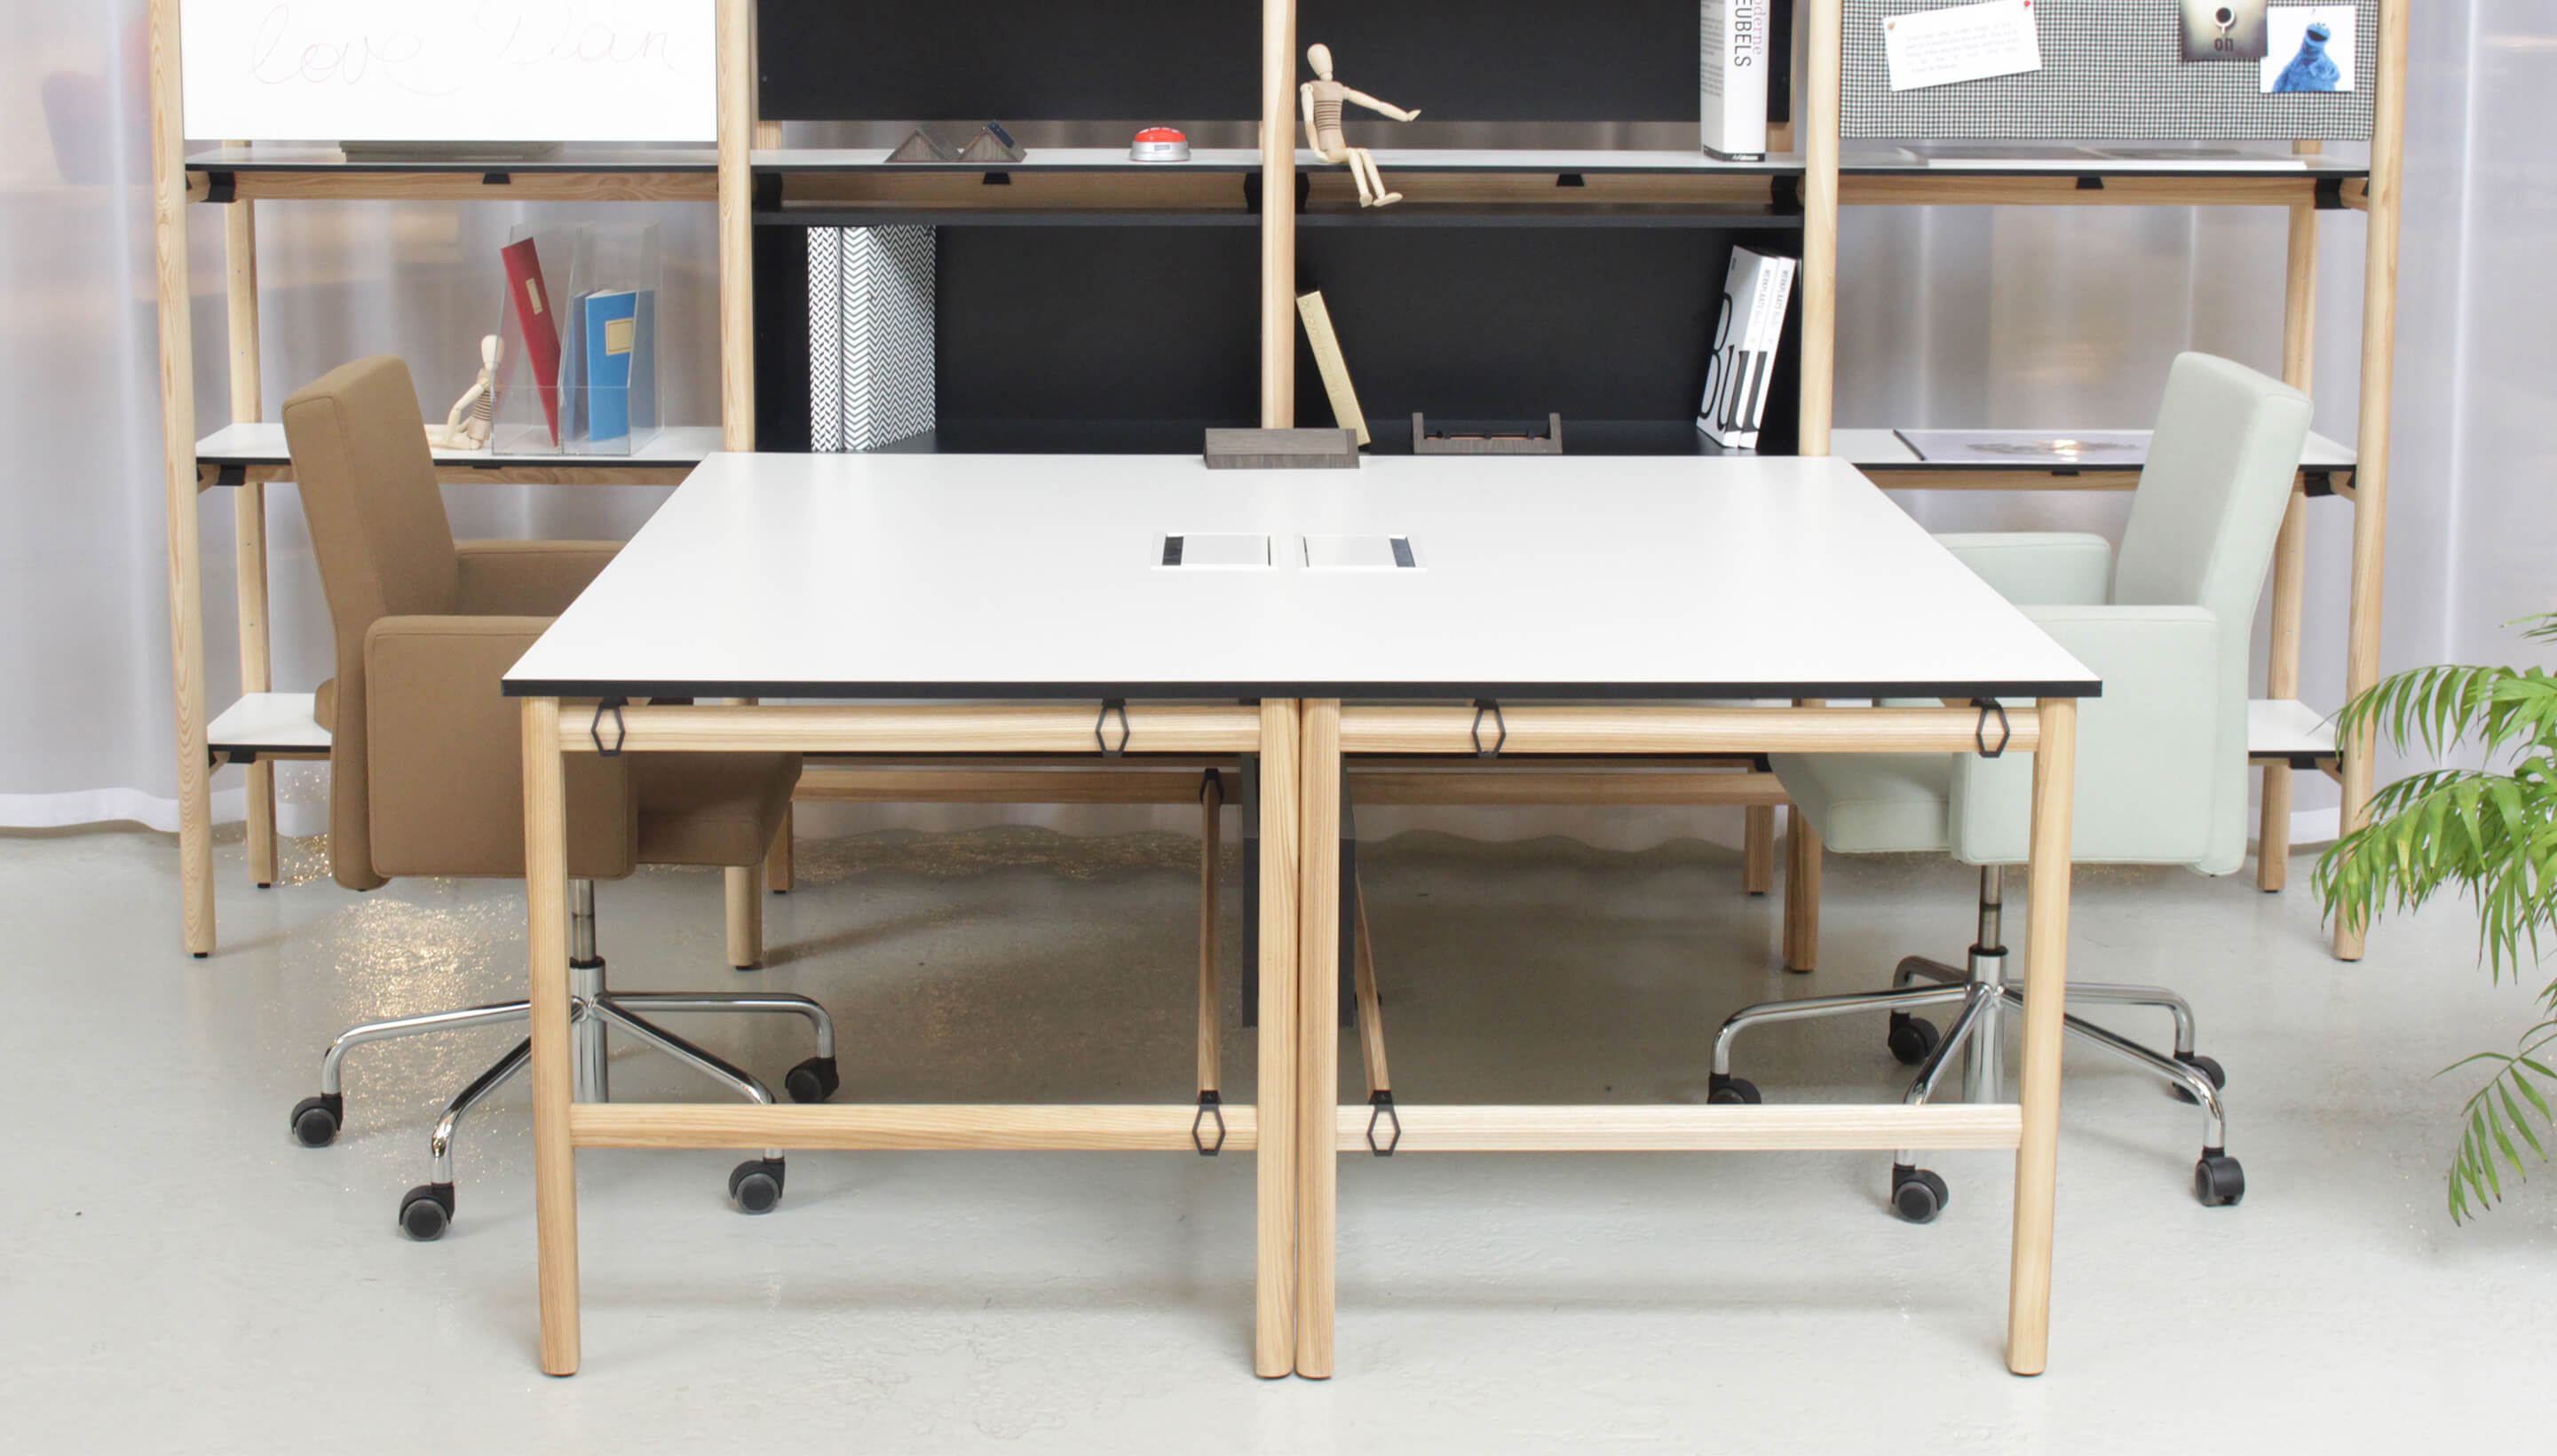 Bulo Dan | Single combination desk and rack, with box